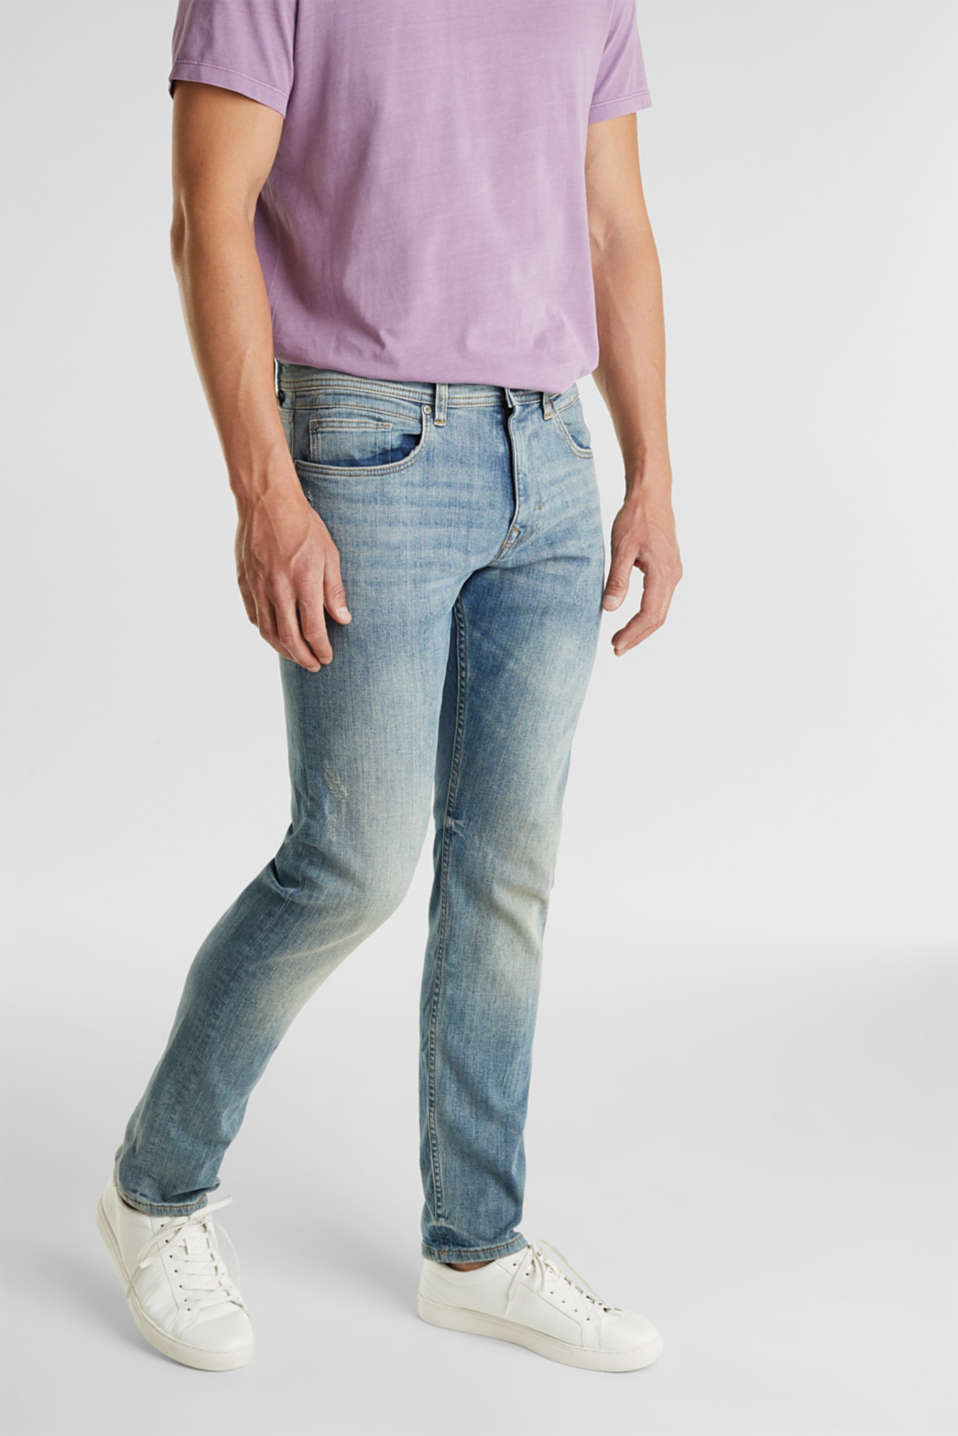 edc - Super stretch jeans with vintage effects